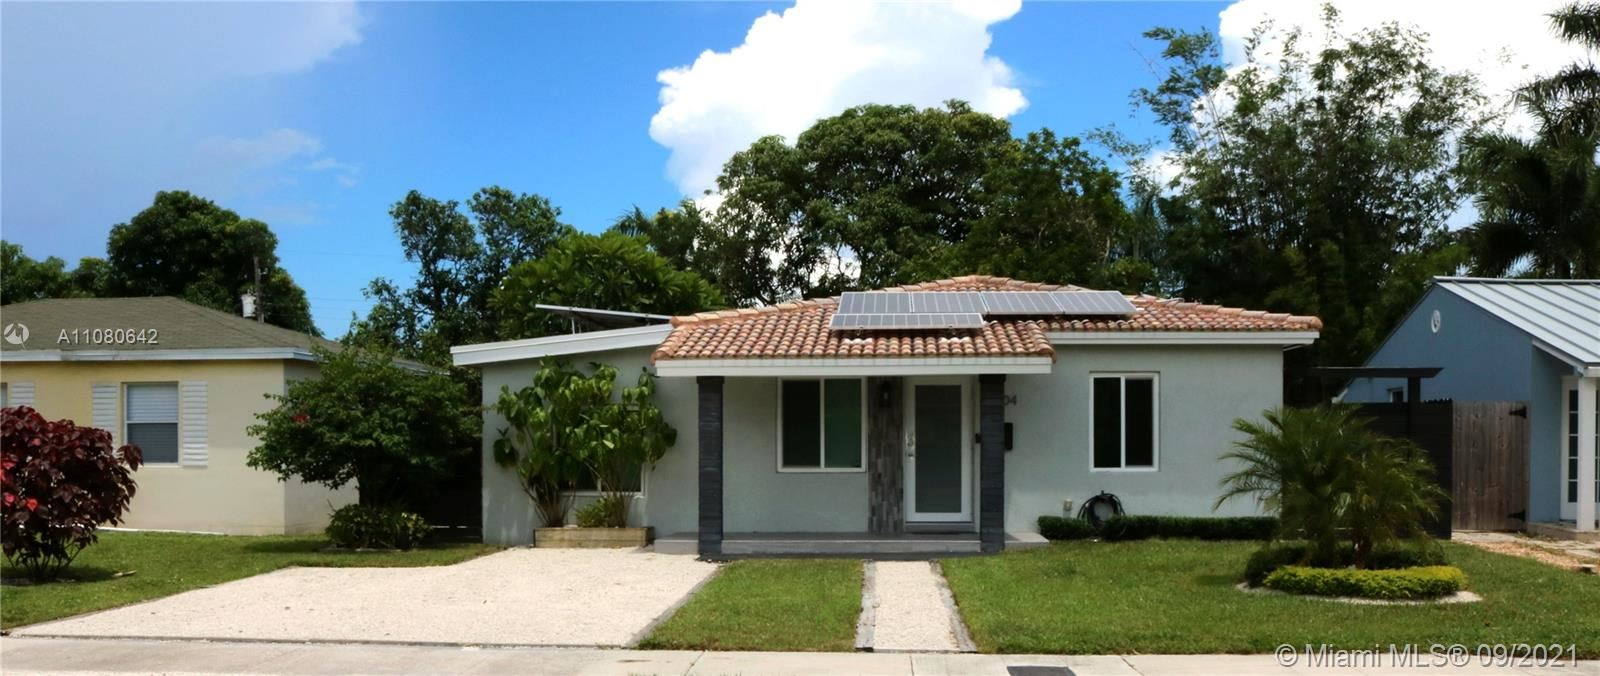 Photo of 1404 NE 1st Ave, Fort Lauderdale, FL 33304 (MLS # A11080642)